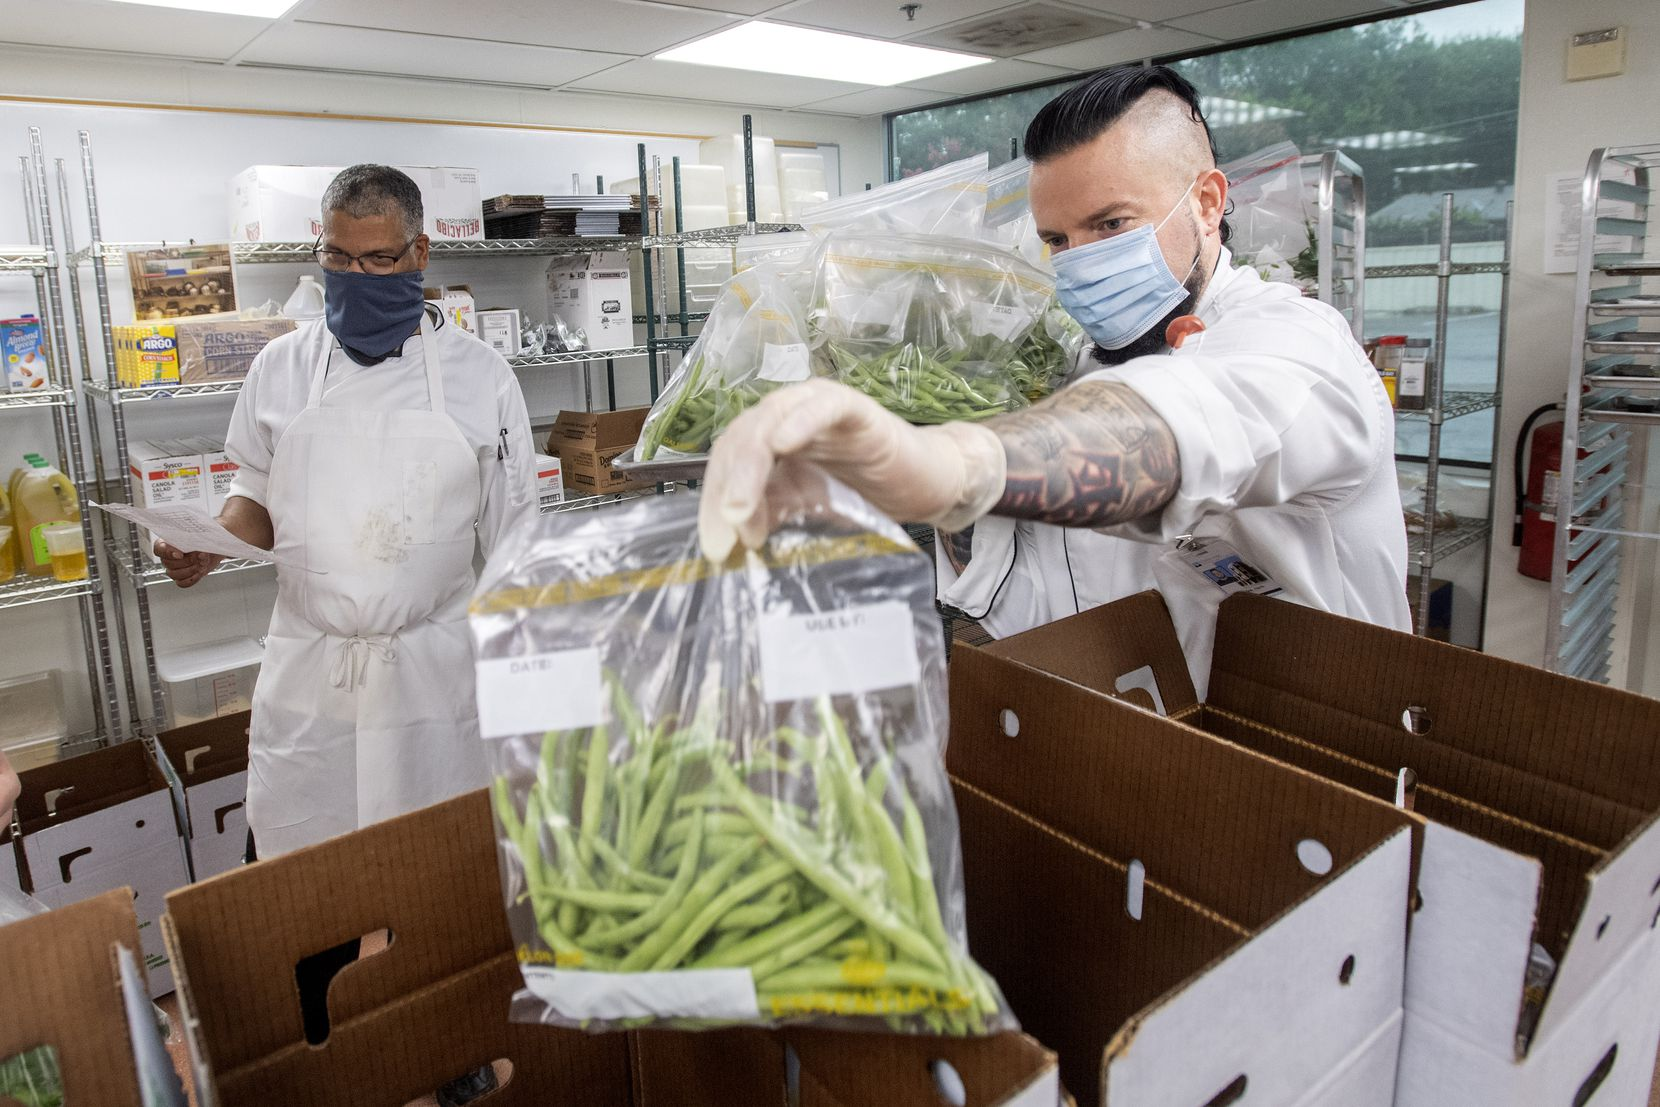 Patrick Stark (right), an instructional specialist at the Dallas College Culinary, Pastry and Hospitality Center, loads green beans into boxes of ingredients as instructional dean Brian Hay looks on.